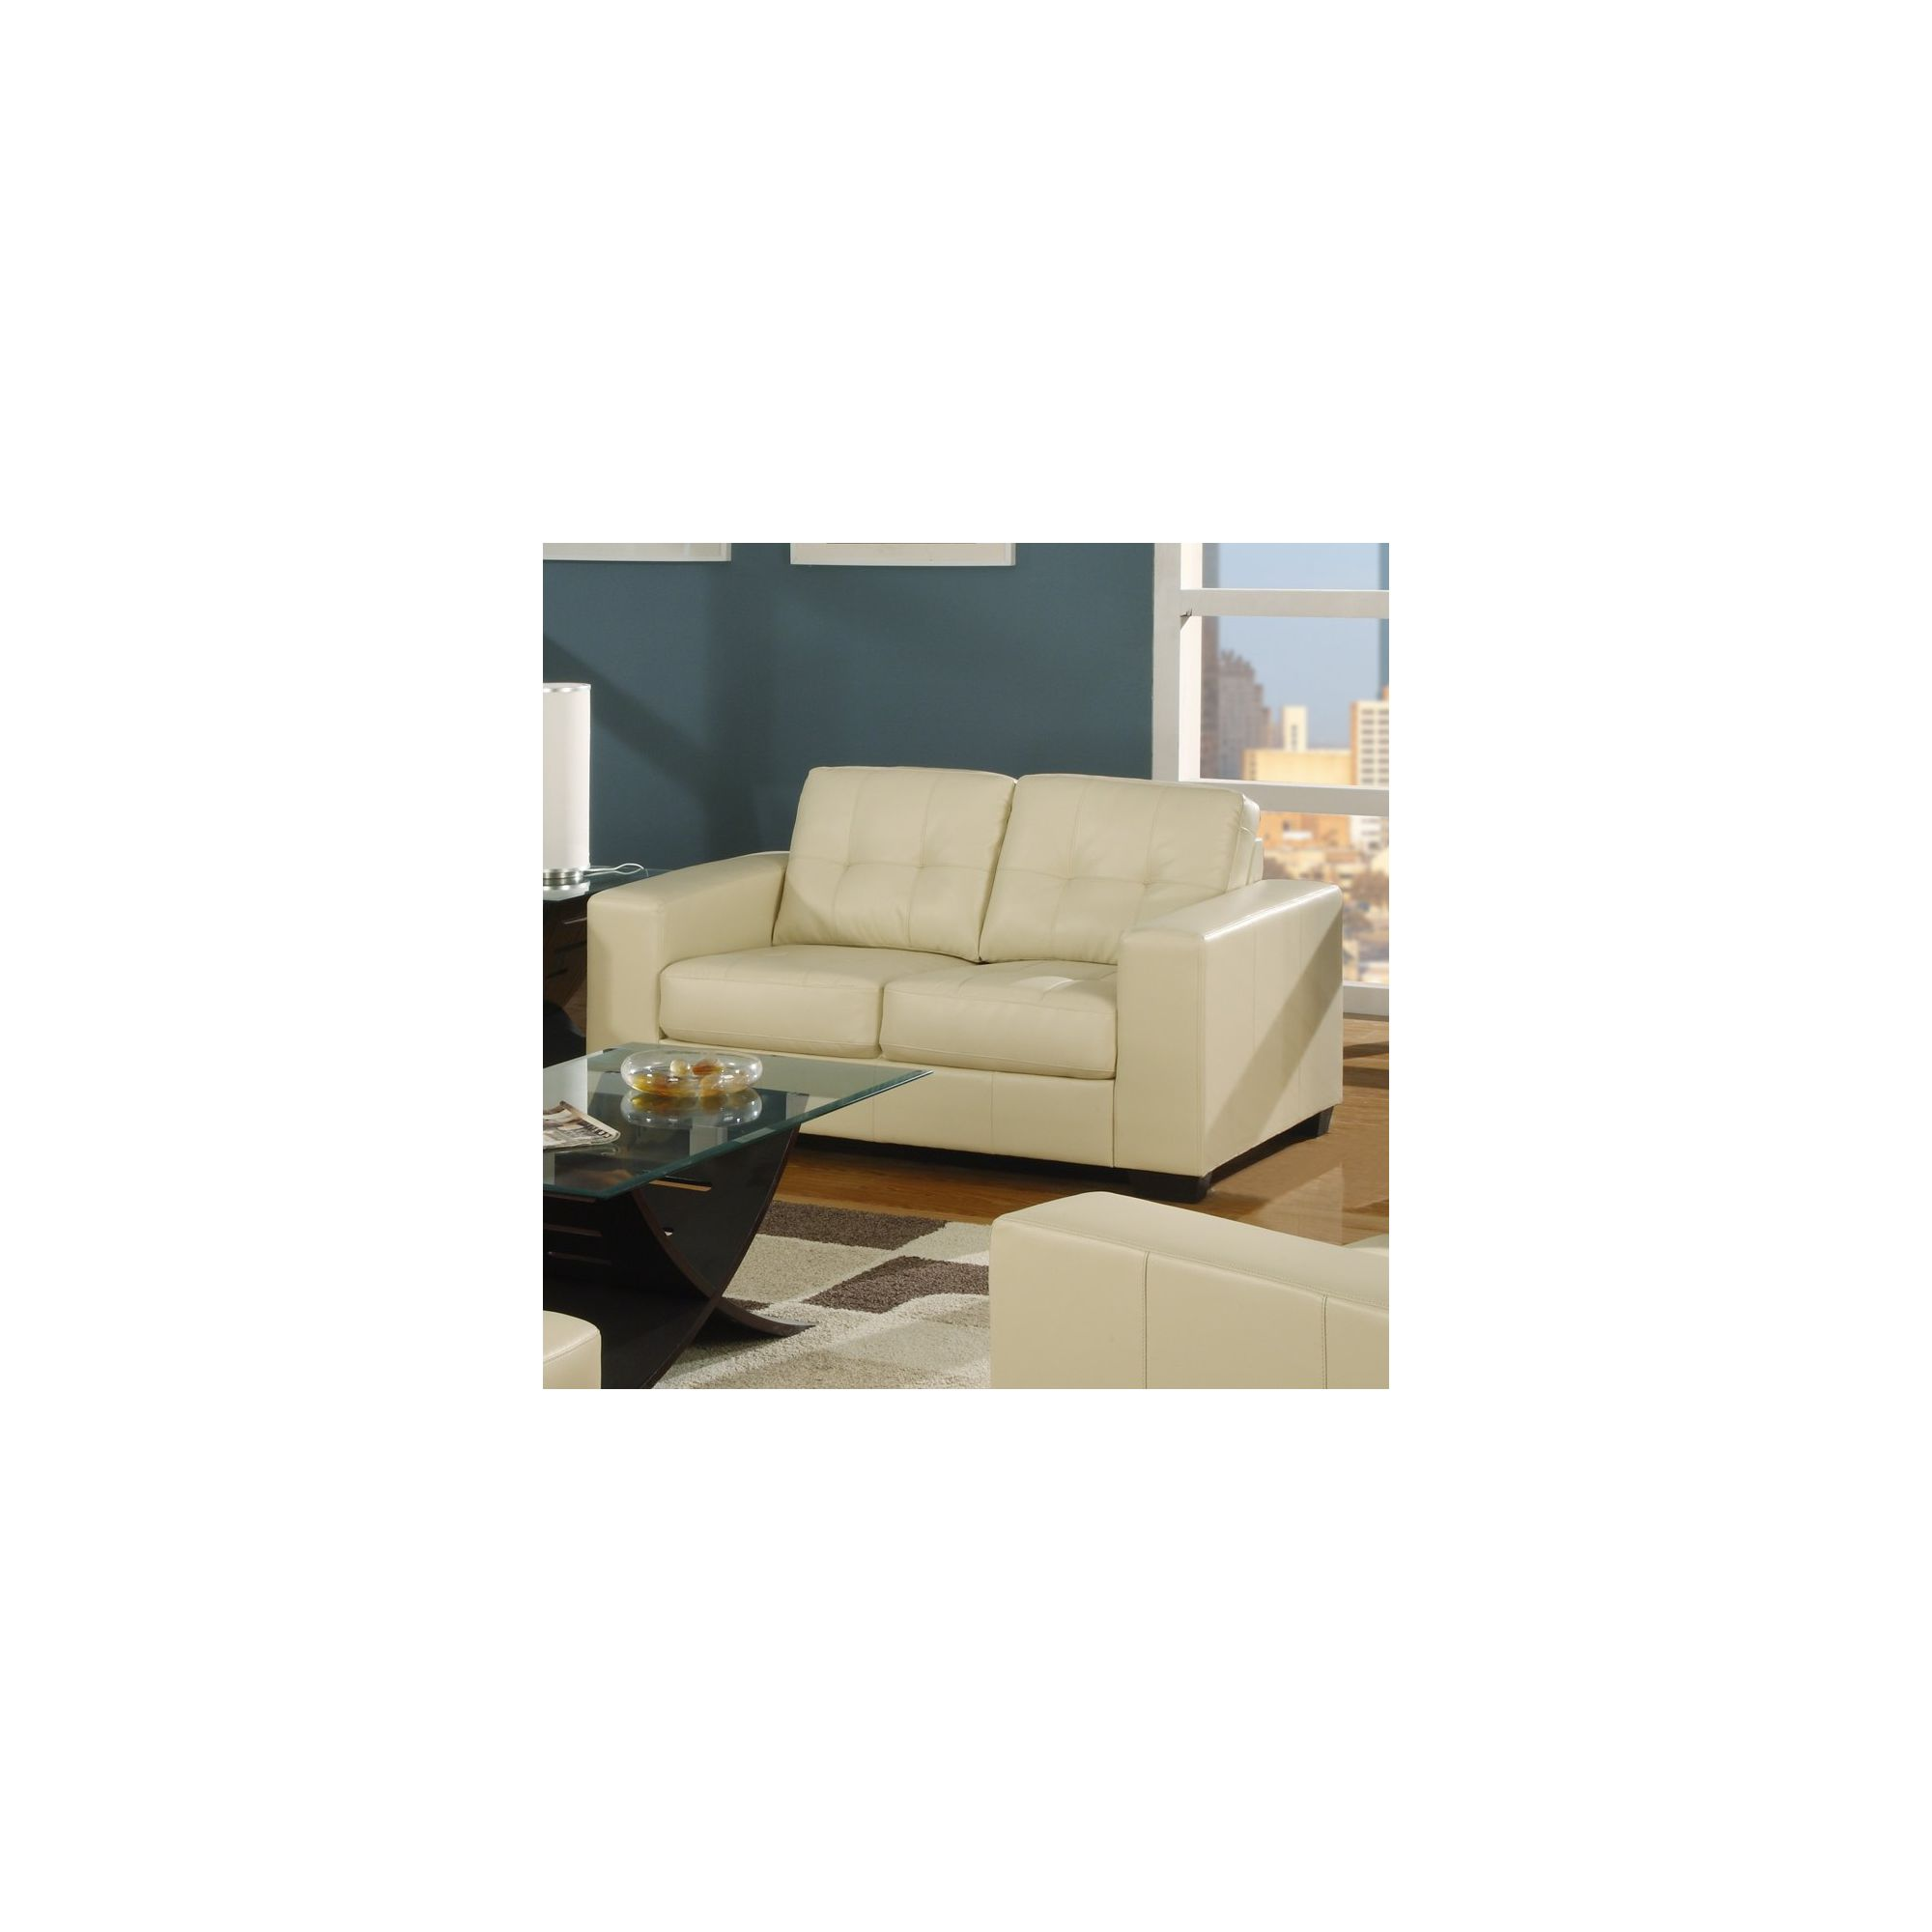 Furniture Link Gemona 2 Seater Sofa - Ivory at Tesco Direct